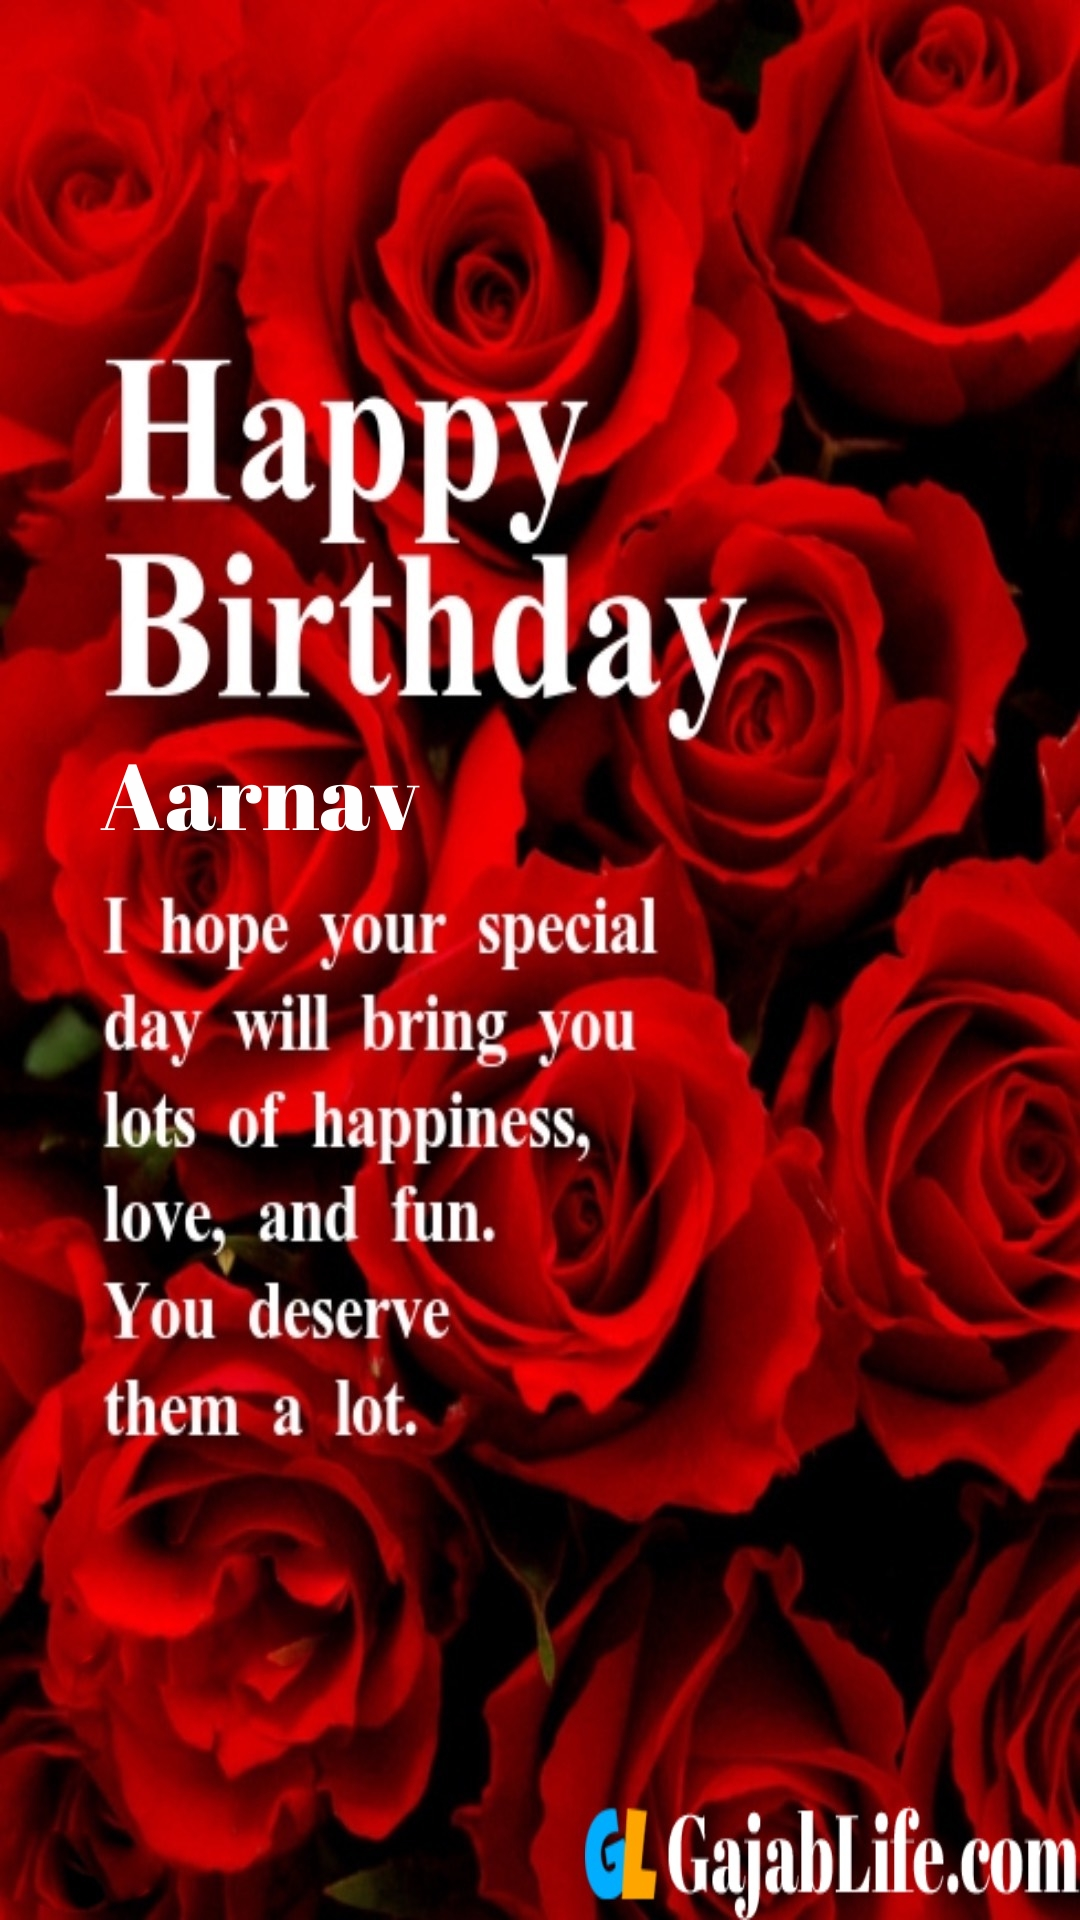 Aarnav birthday greeting card with rose & love